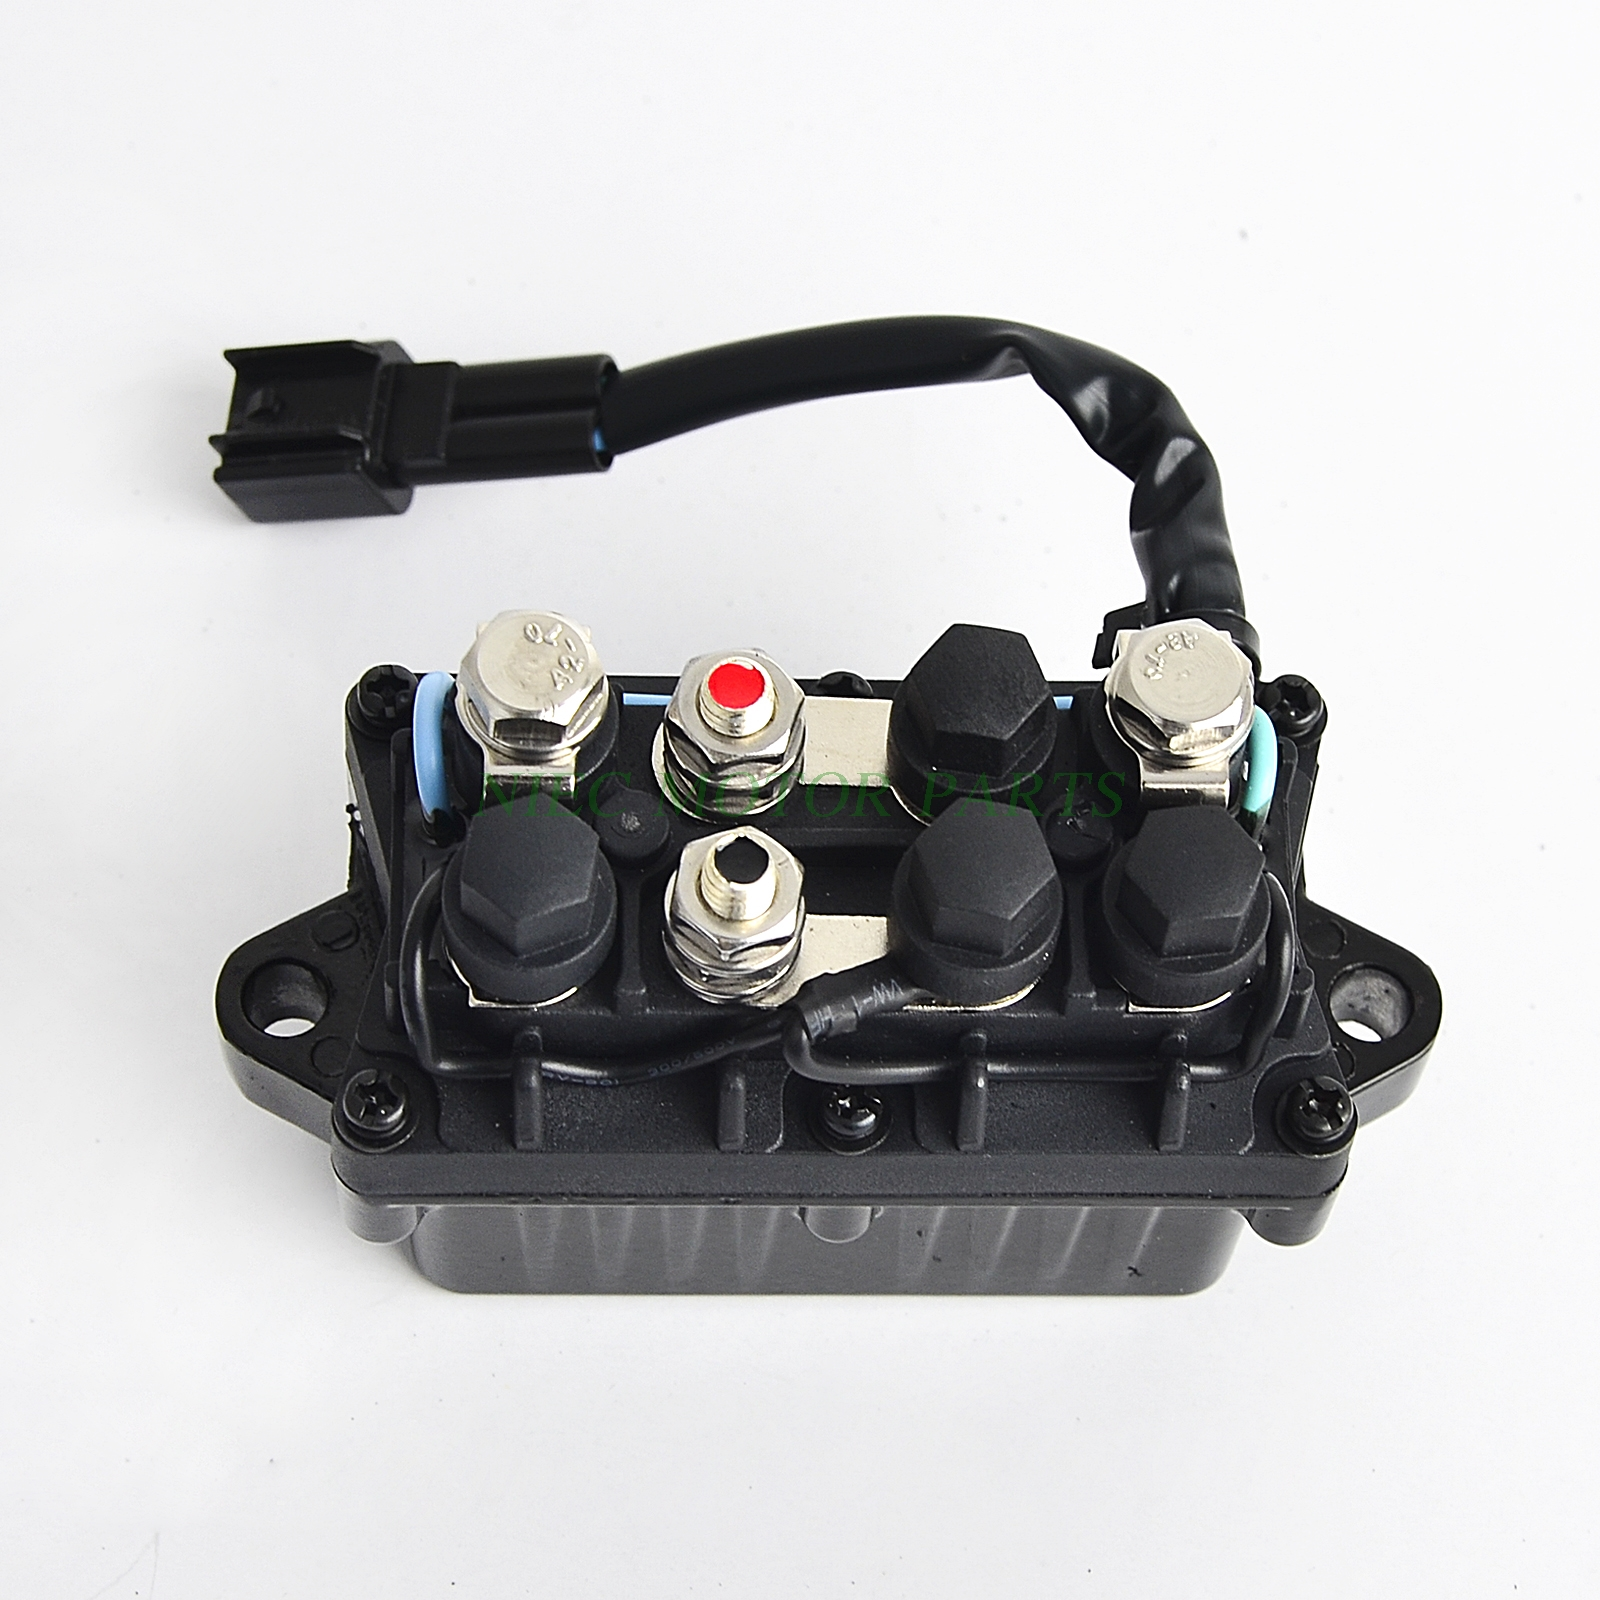 power trim relay in box 2 pin for 4 stroke 40hp 225hp for yamaha outboard engine [ 1600 x 1600 Pixel ]